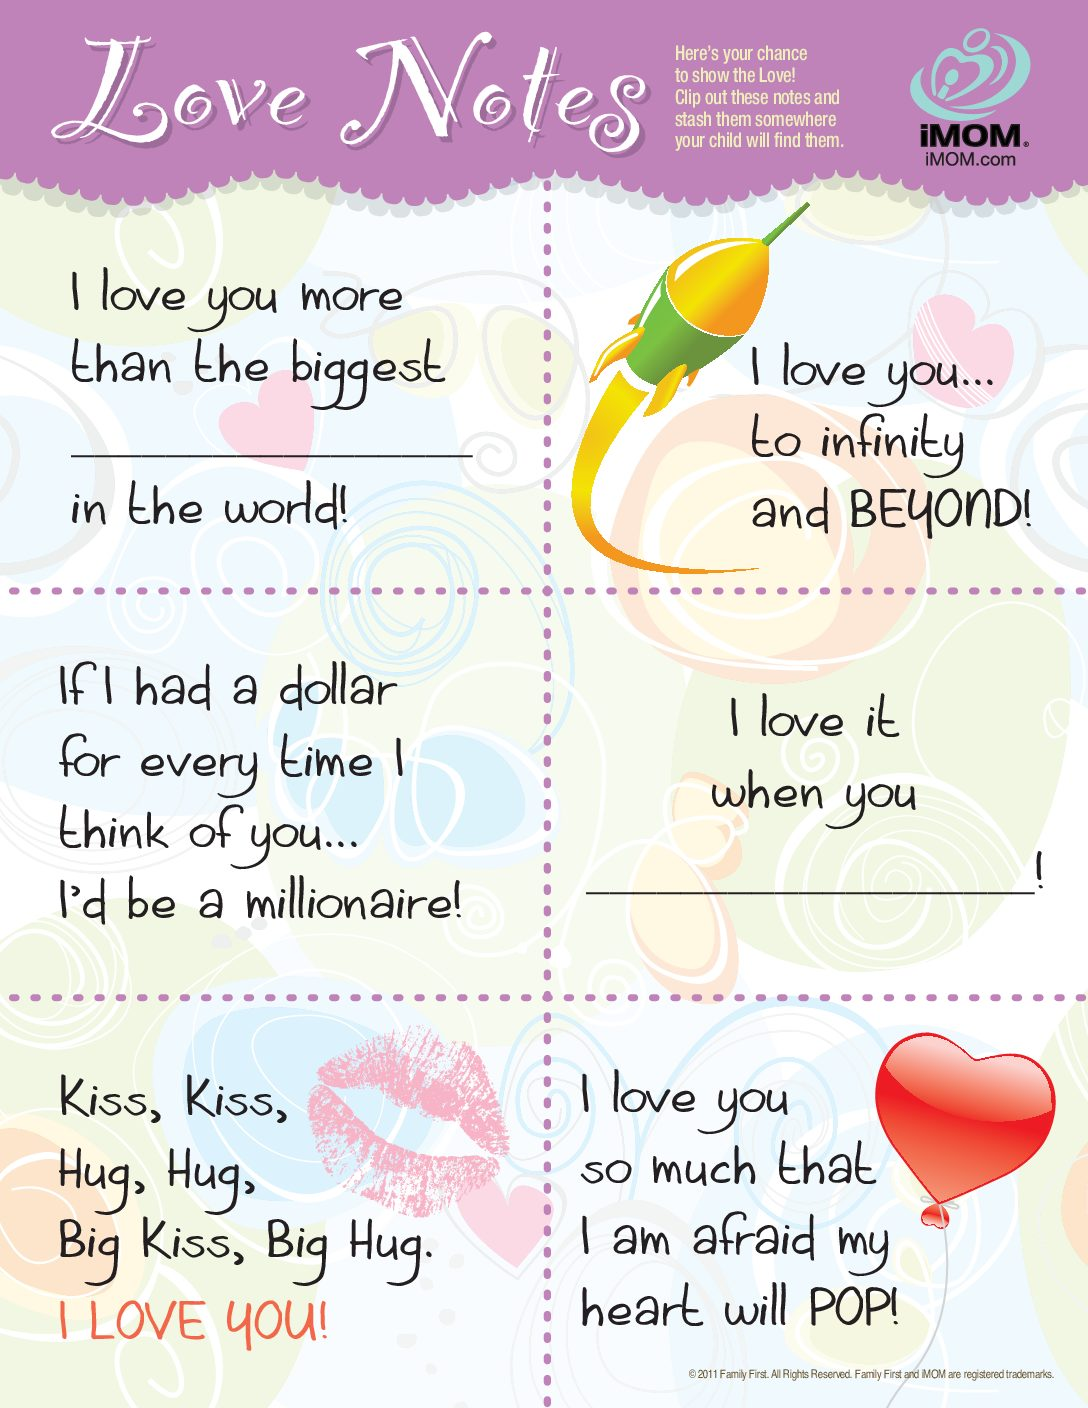 Imom Love Notes Imom